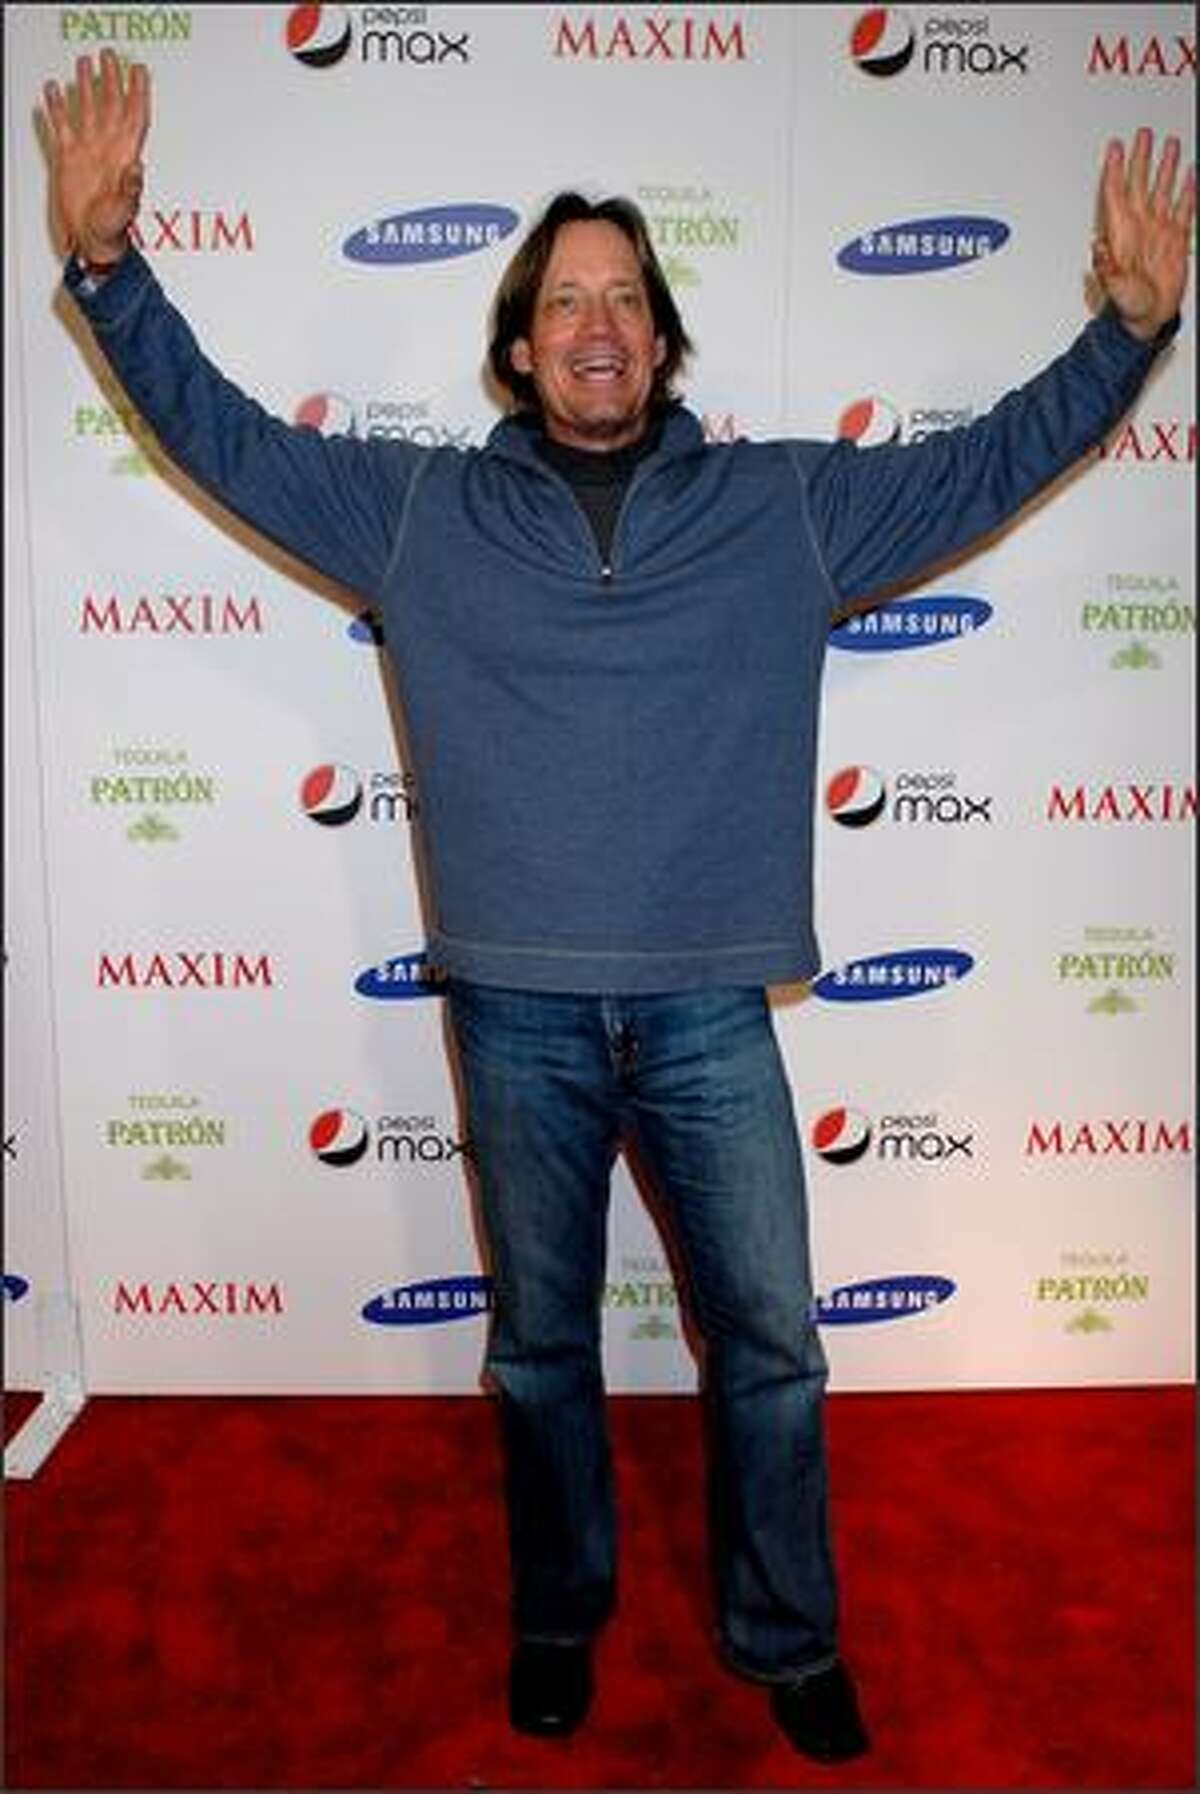 Actor Kevin Sorbo arrives for the Maxim Magazine Super Bowl XLIII party at The Ritz Ybor on Friday in Tampa, Florida.